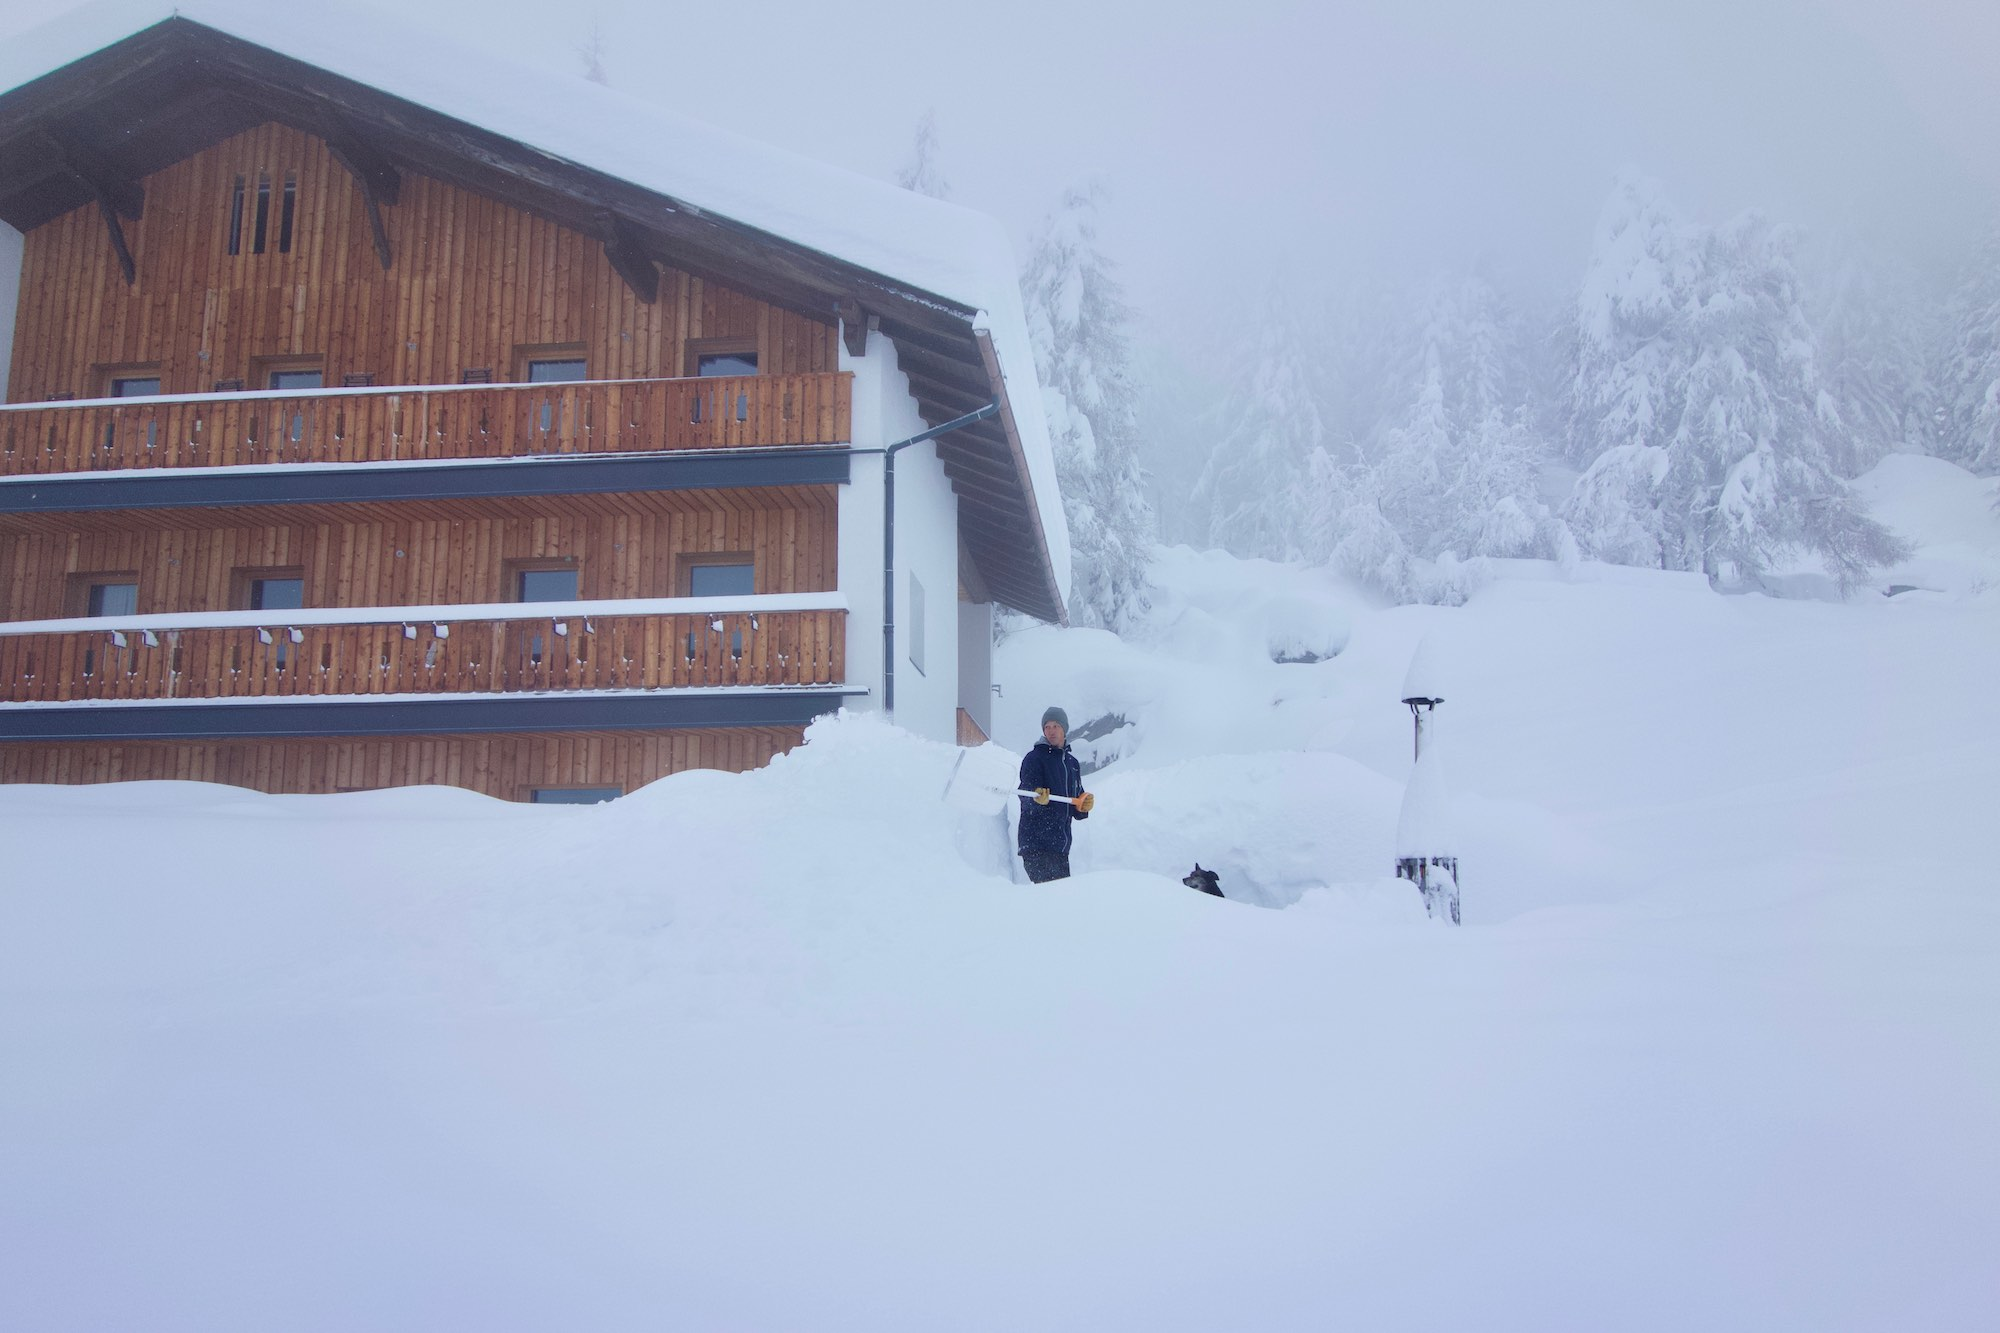 Snow clearing at MoaAlm Mountain Retreat, Austria